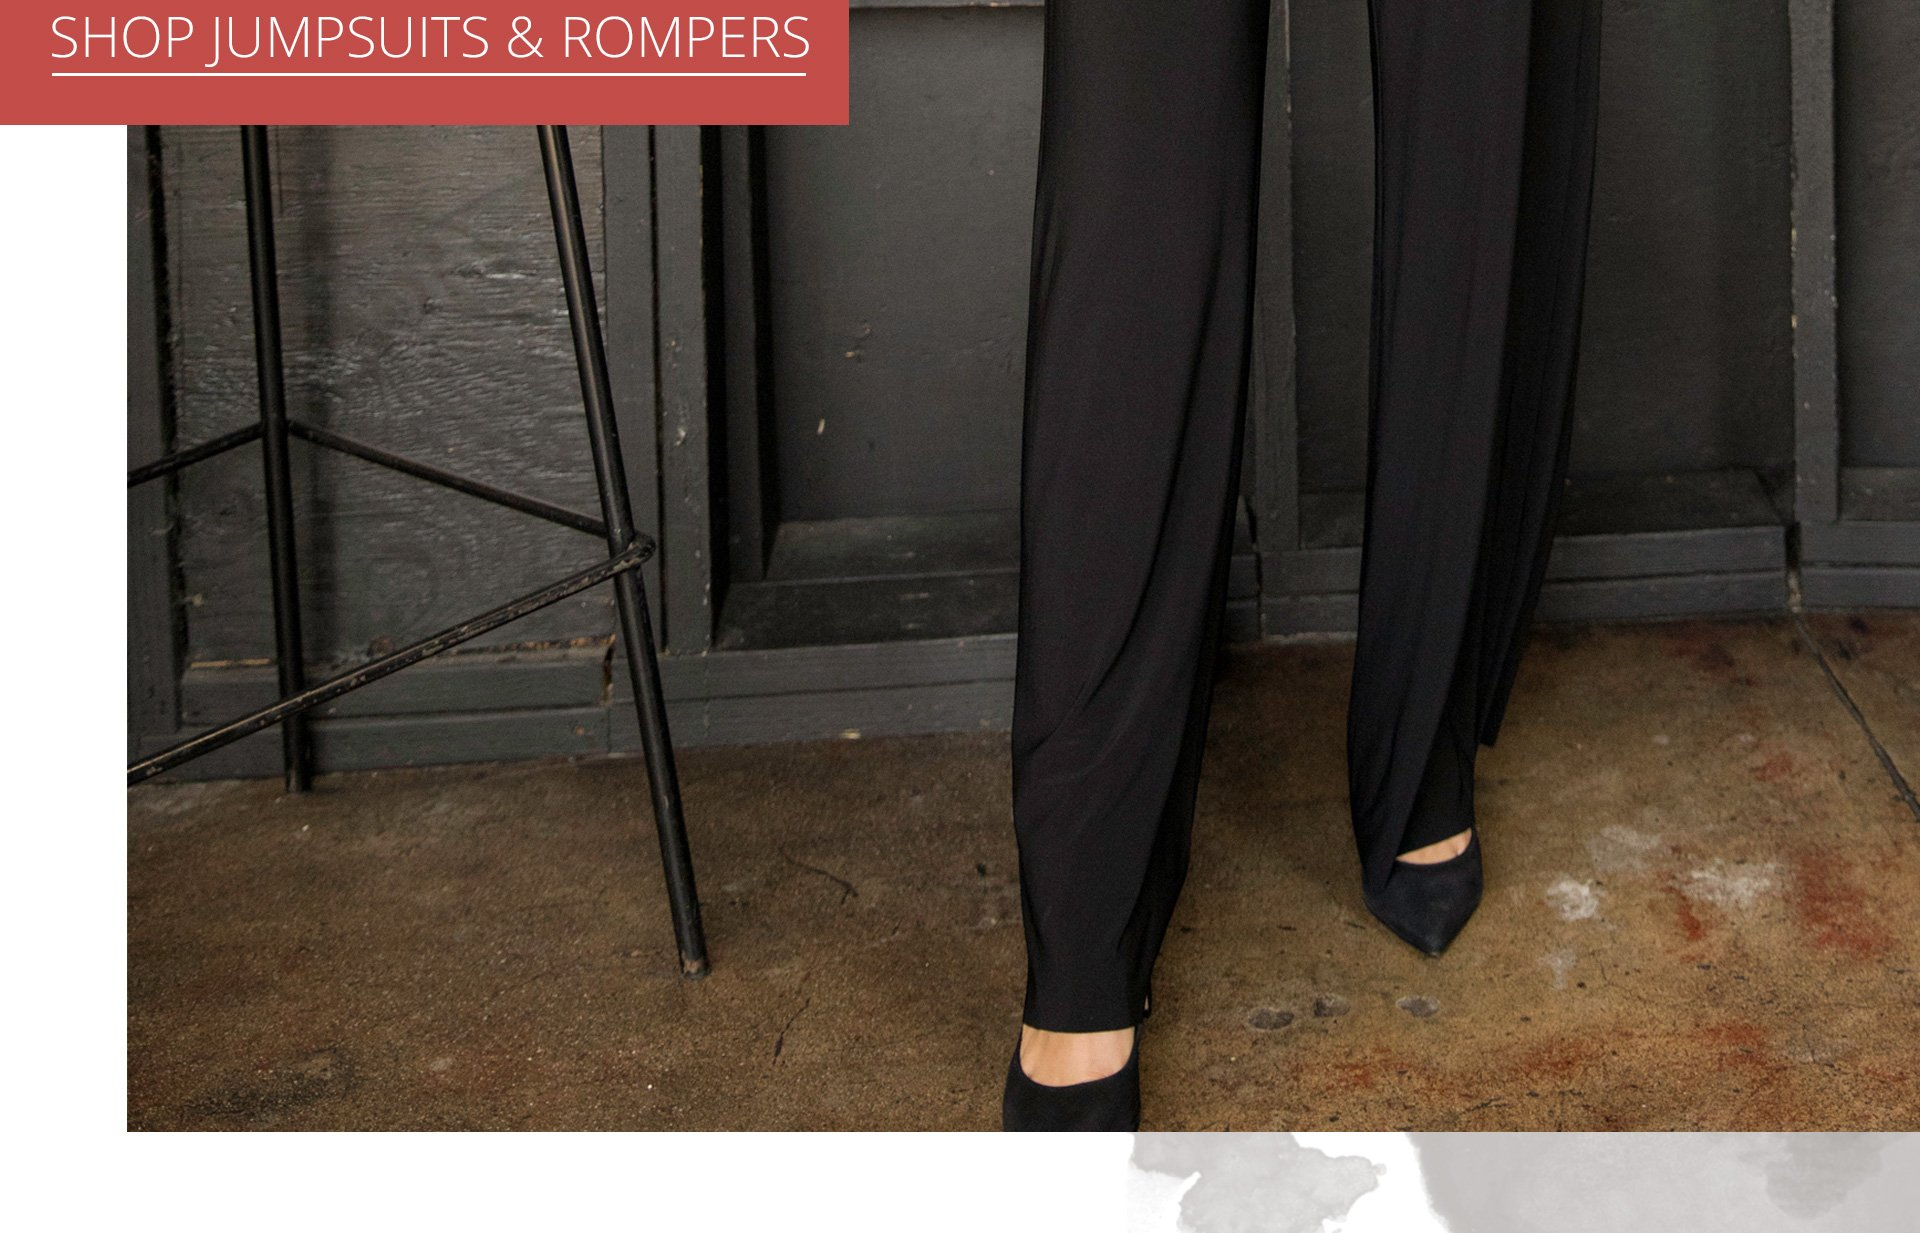 Shop Jumpsuits & Rompers